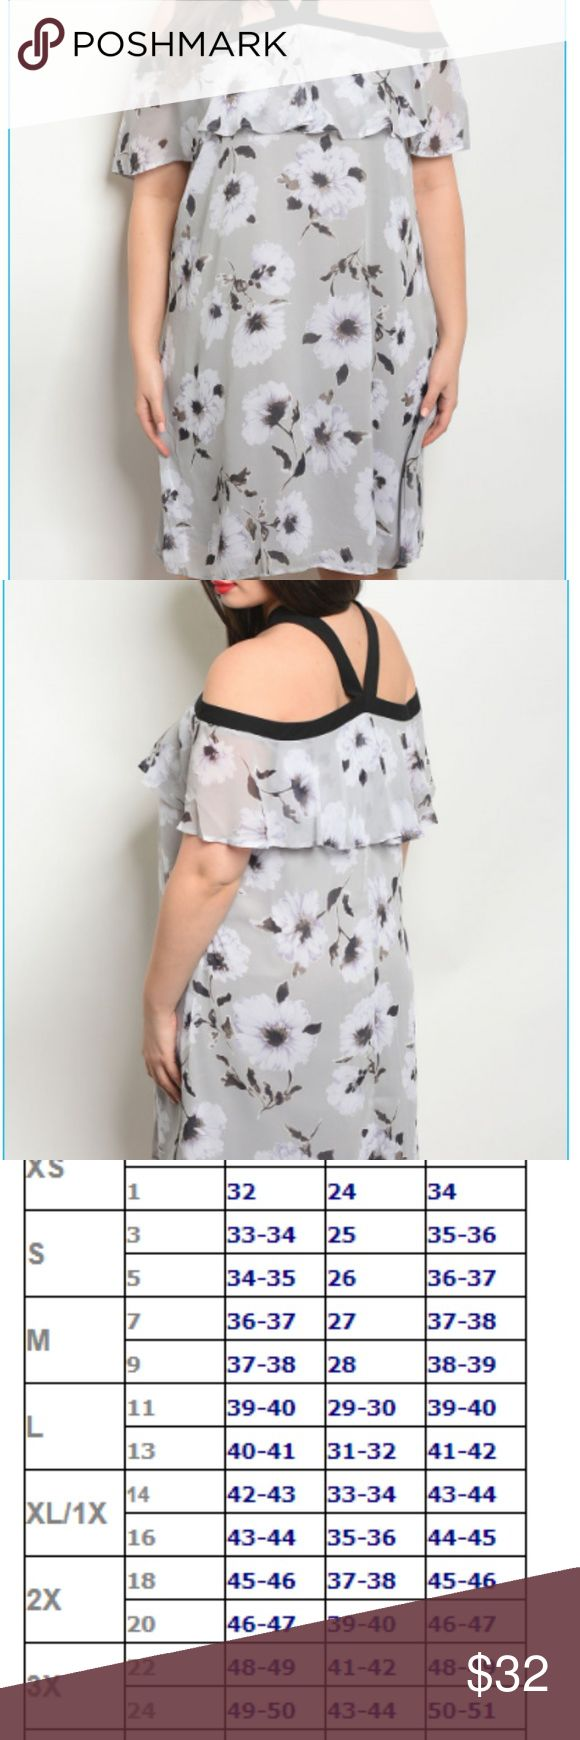 GRAY FLORAL PLUS SIZE DRESS OFFERS ARE WELCOME! Plus size sleeveless halter neck... 2